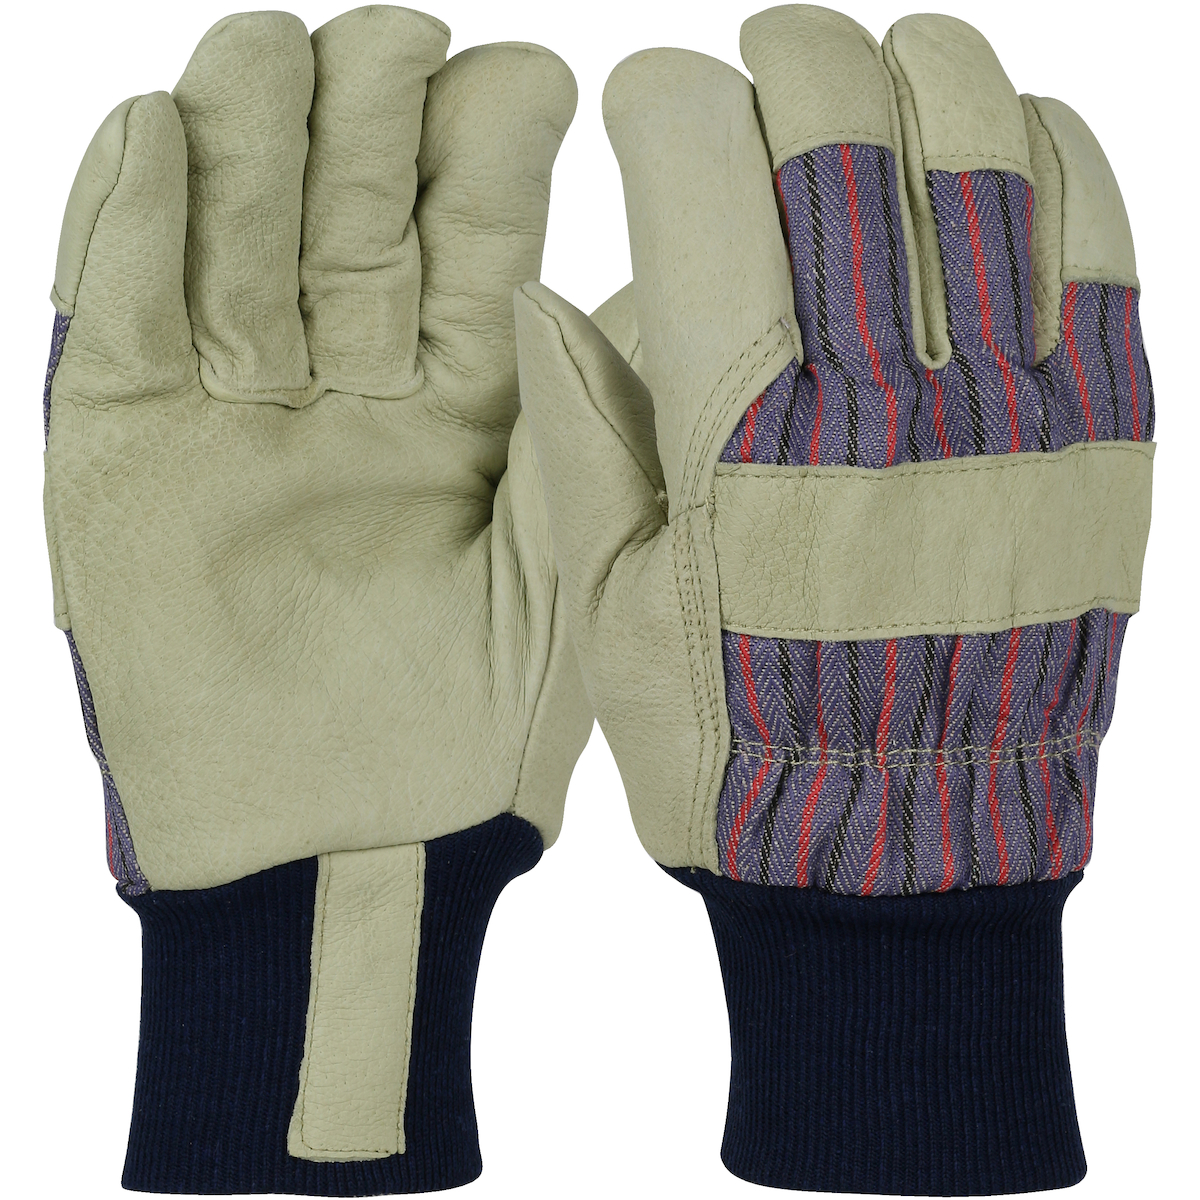 Pigskin Leather Palm Glove with Fabric Back and White Thermal Lining - Knit Wrist, Blue, L